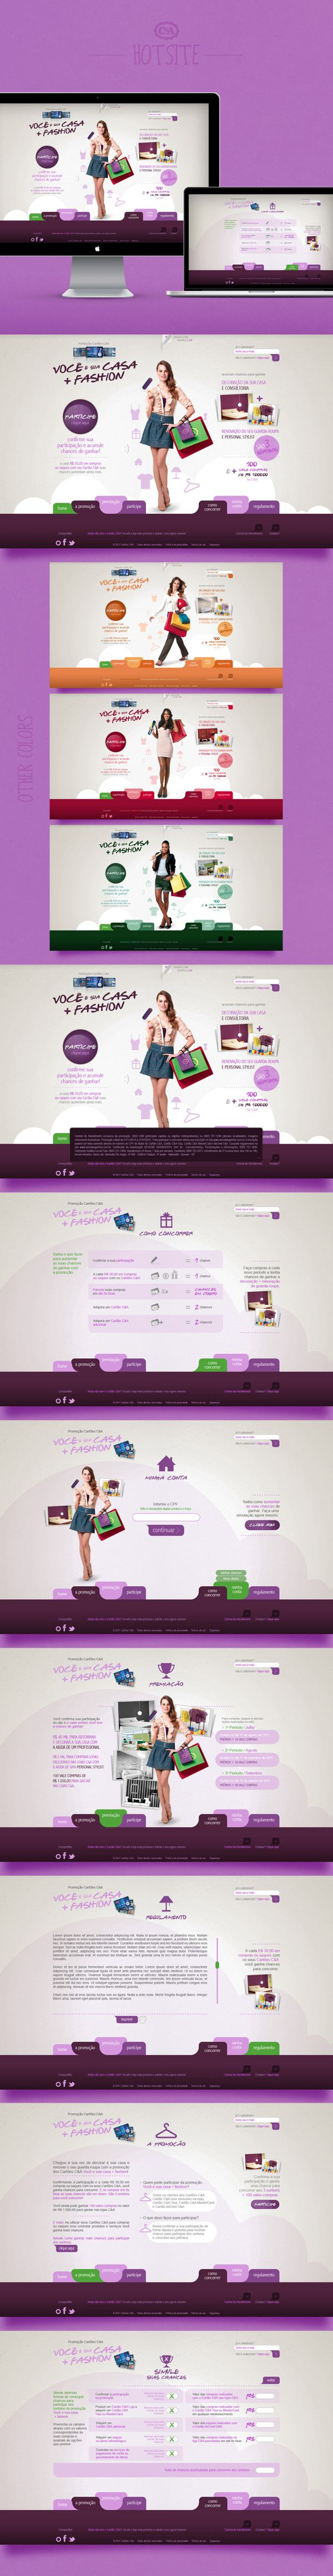 - promotion c&a - by Juliana Laterza, via Behance